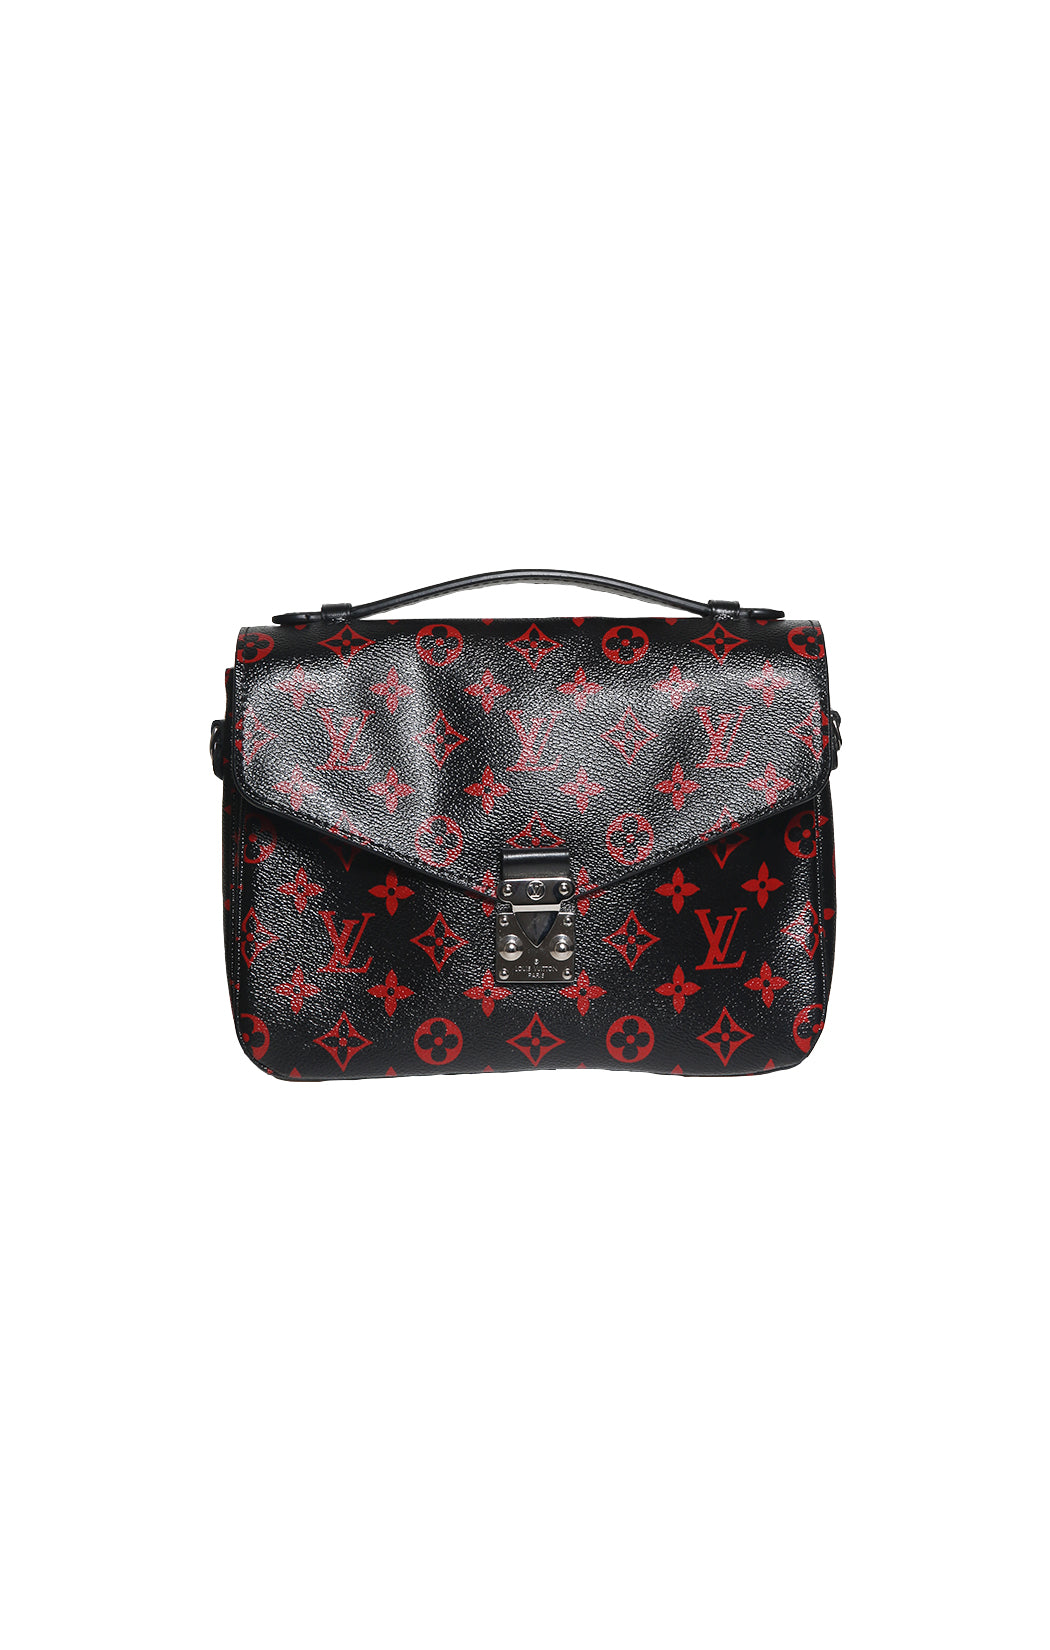 Front view of LOUIS VUITTON  Logo Satchel  Size: 10 in. x 7.5 in. x 3 in.